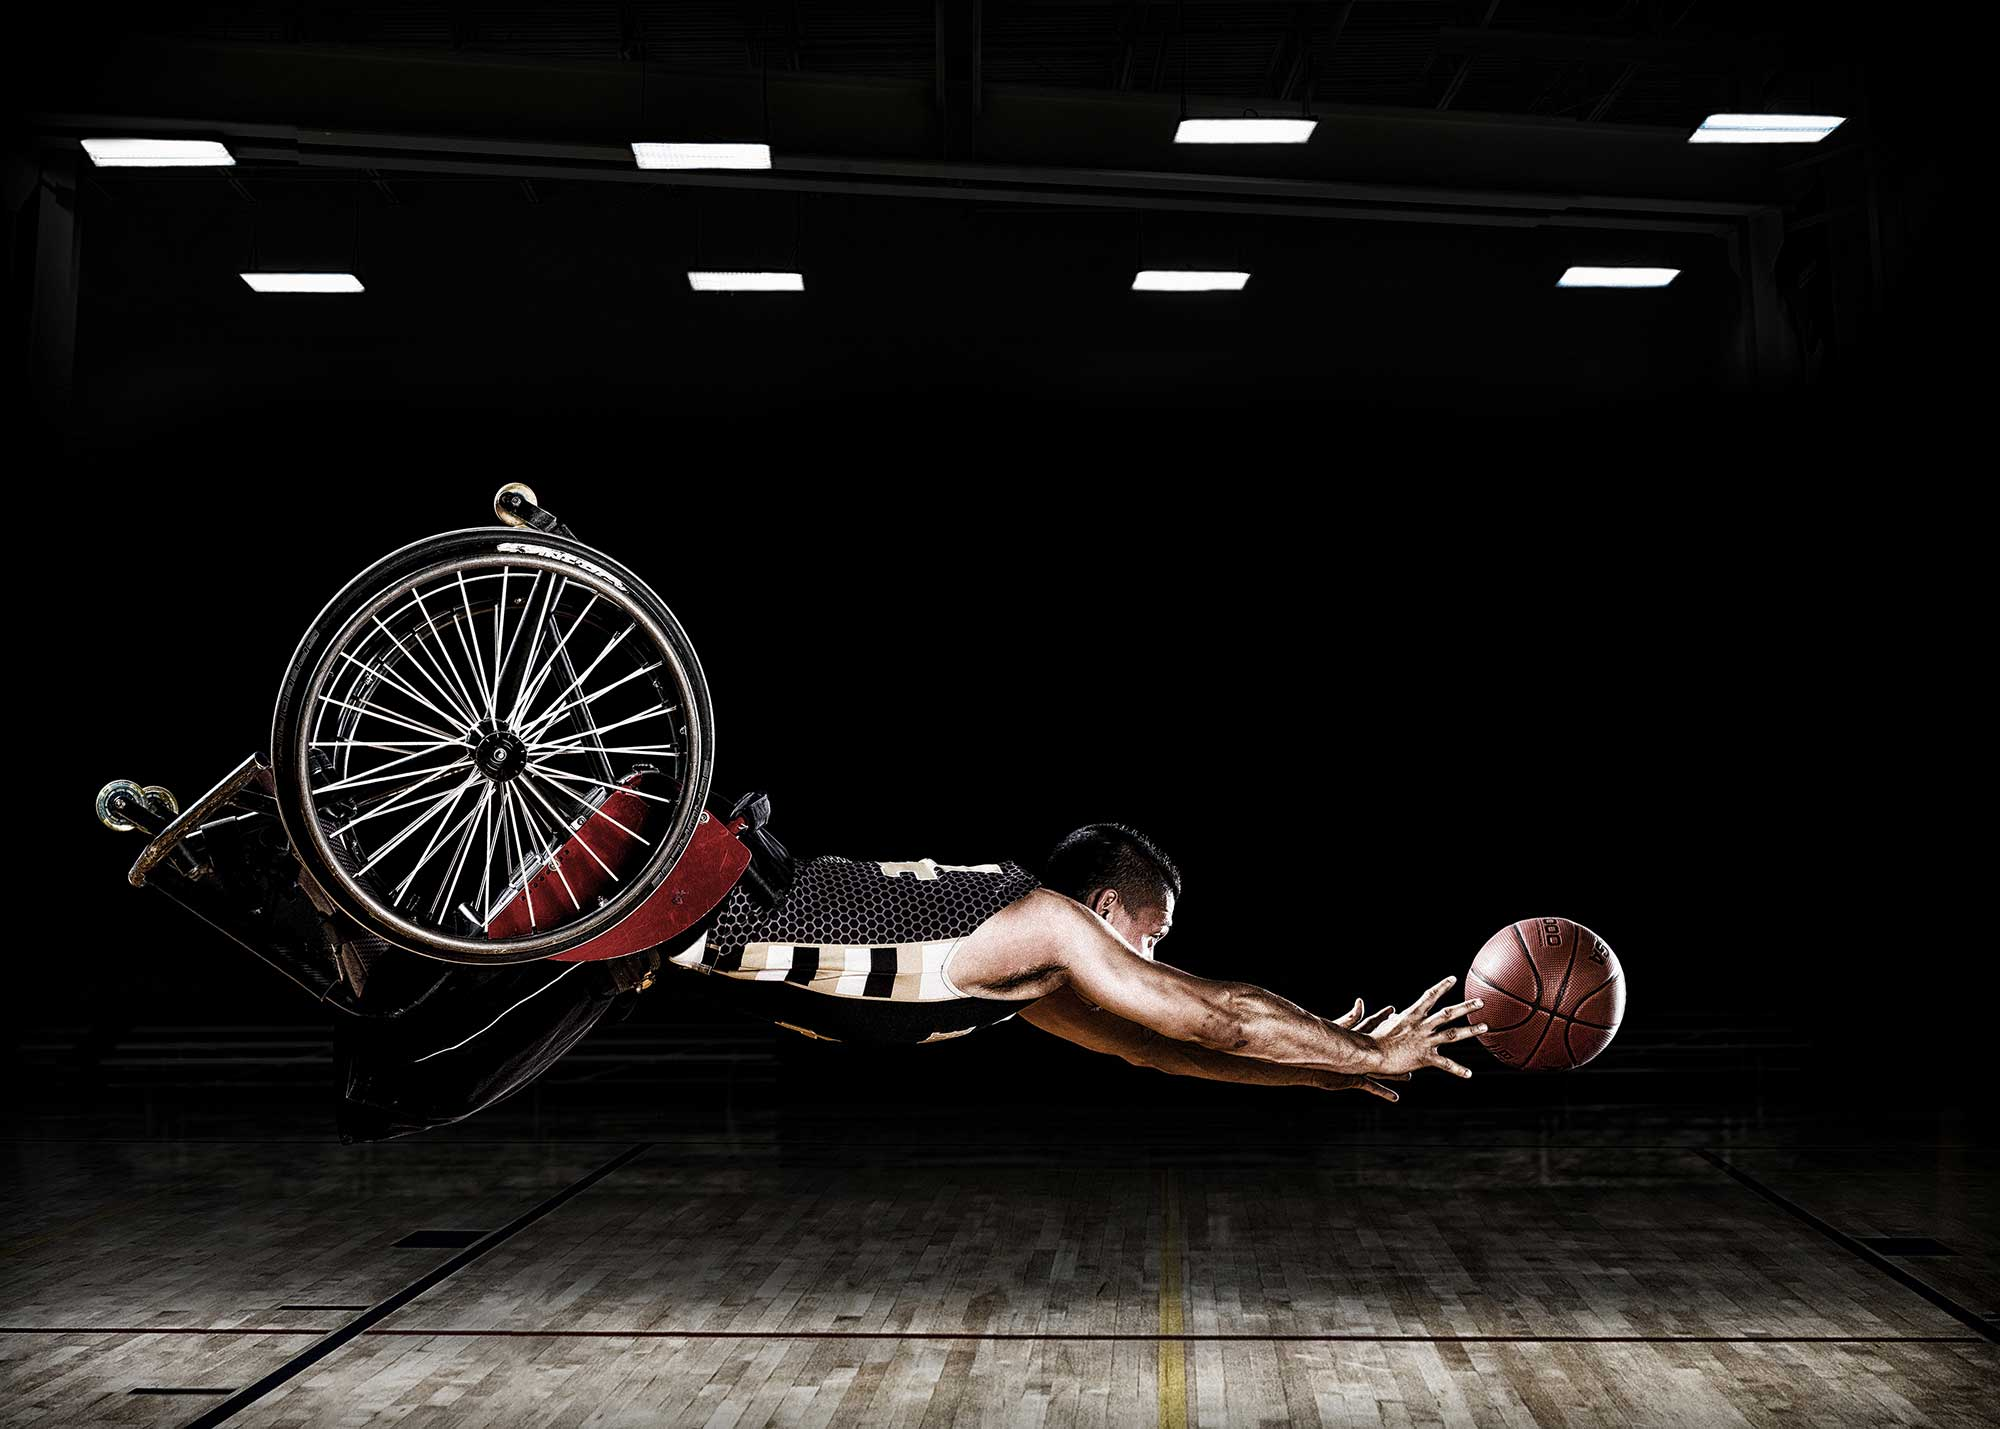 A RIC Hornets wheelchair basketball team member reaches for a basketball. These images were created for the Rehabilitation Institute of Chicago's Adaptive Sports Program.